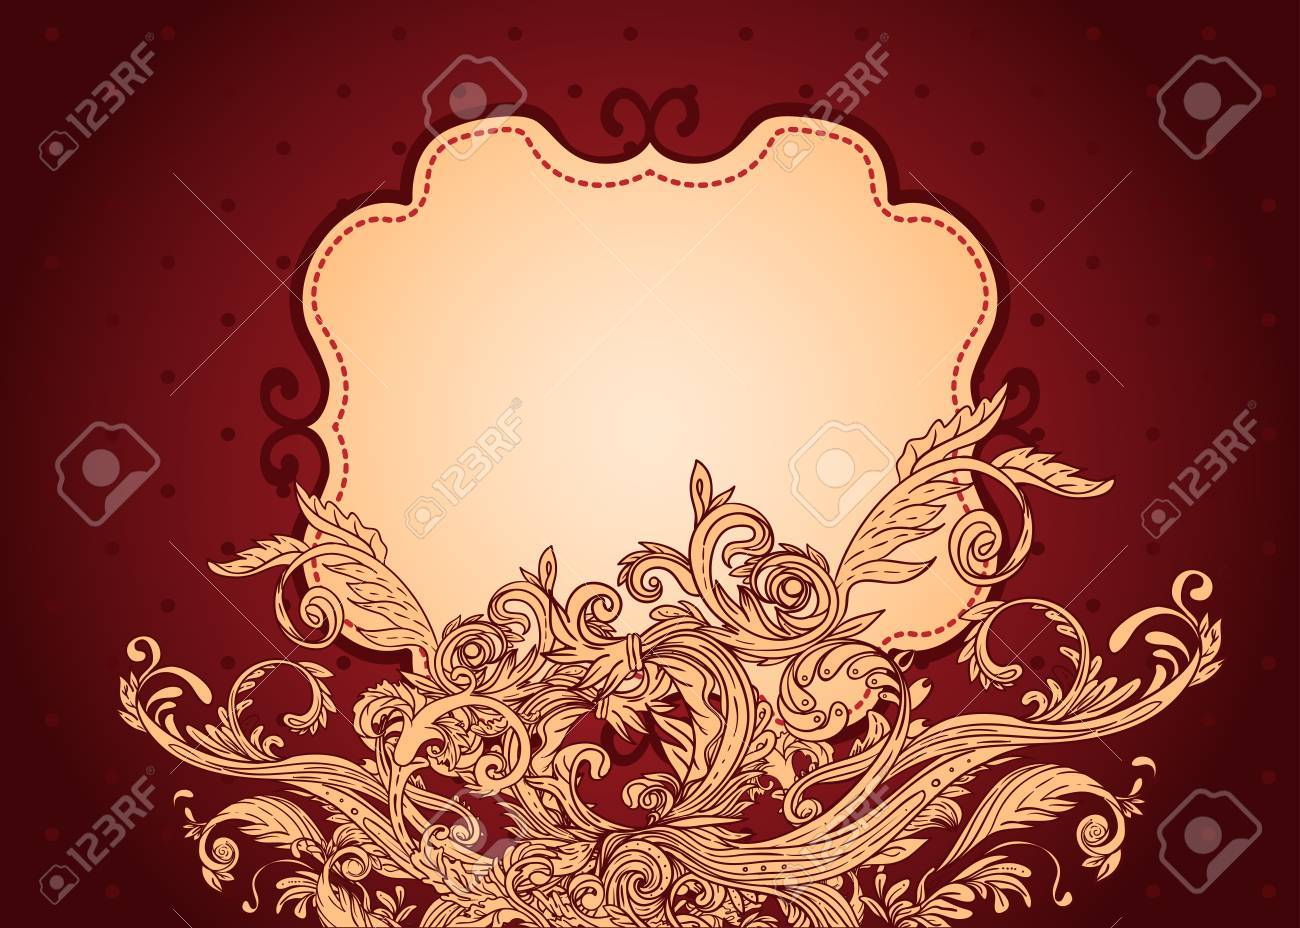 Vintage background ornate baroque pattern vector illustration stock - Vintage Background Ornate Baroque Pattern Vector Illustration Stock Vector 33592484